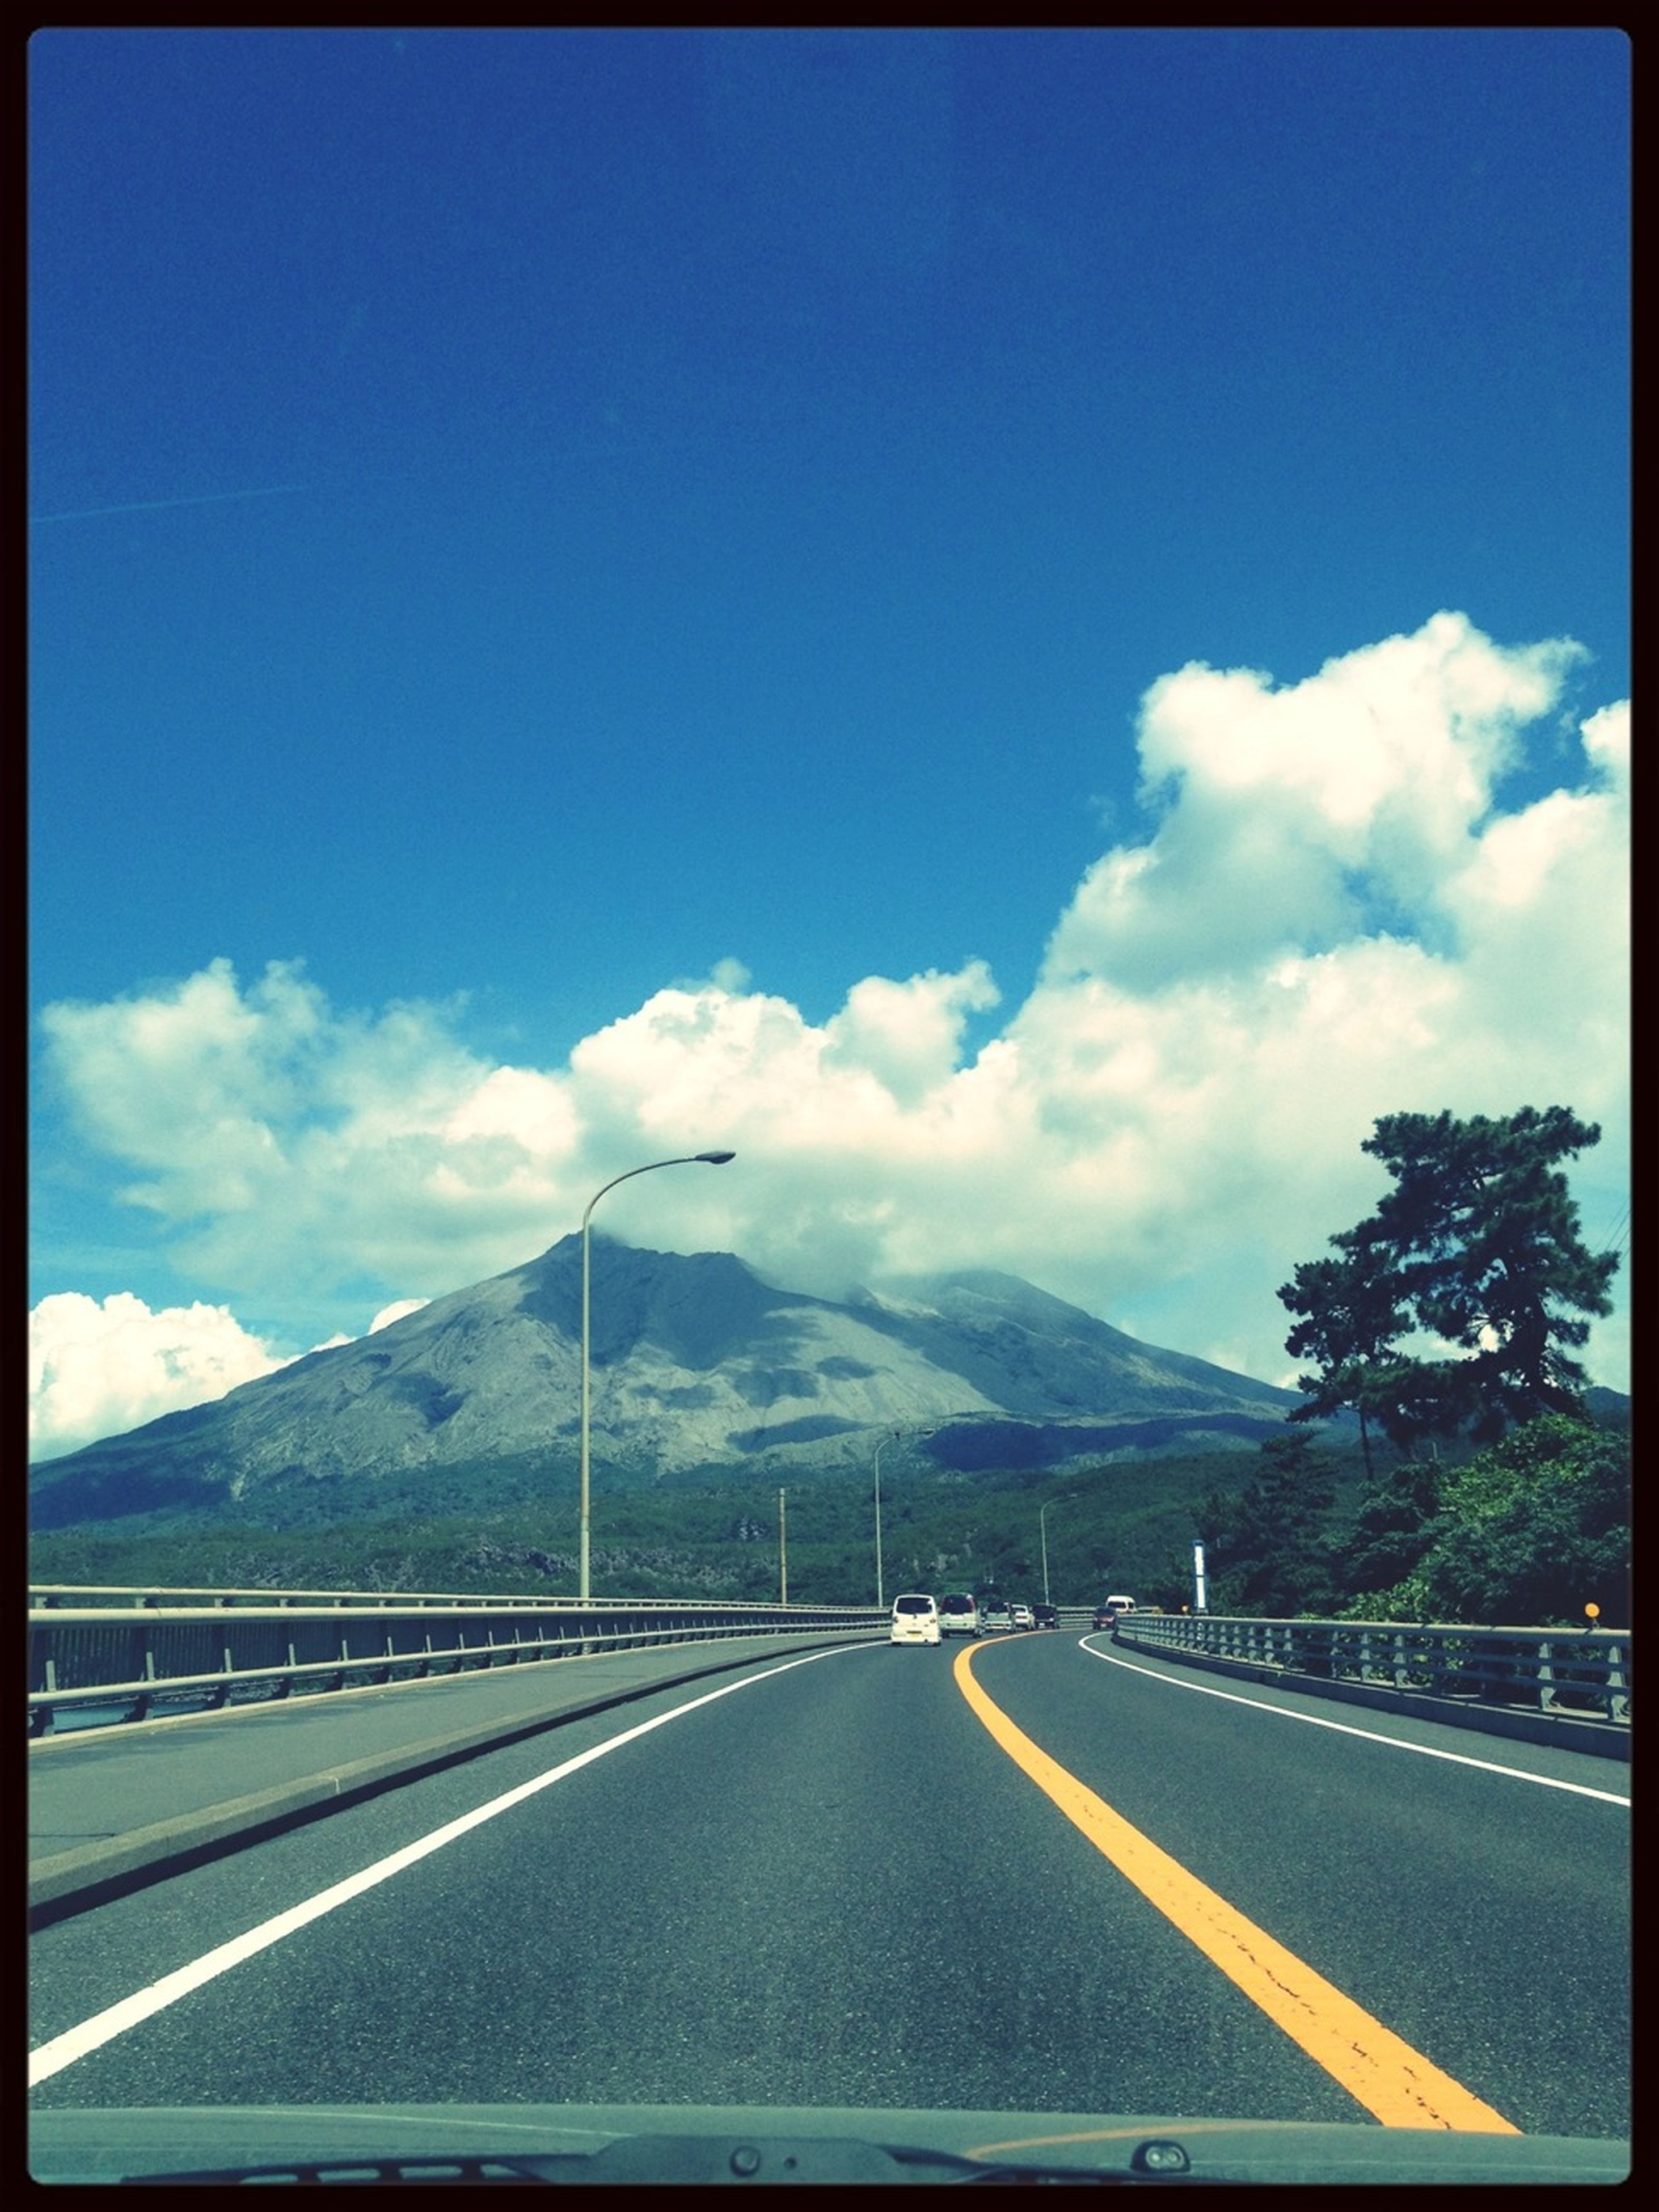 road, transportation, road marking, the way forward, mountain, sky, transfer print, diminishing perspective, highway, vanishing point, mountain range, country road, auto post production filter, car, blue, street, cloud, cloud - sky, asphalt, empty